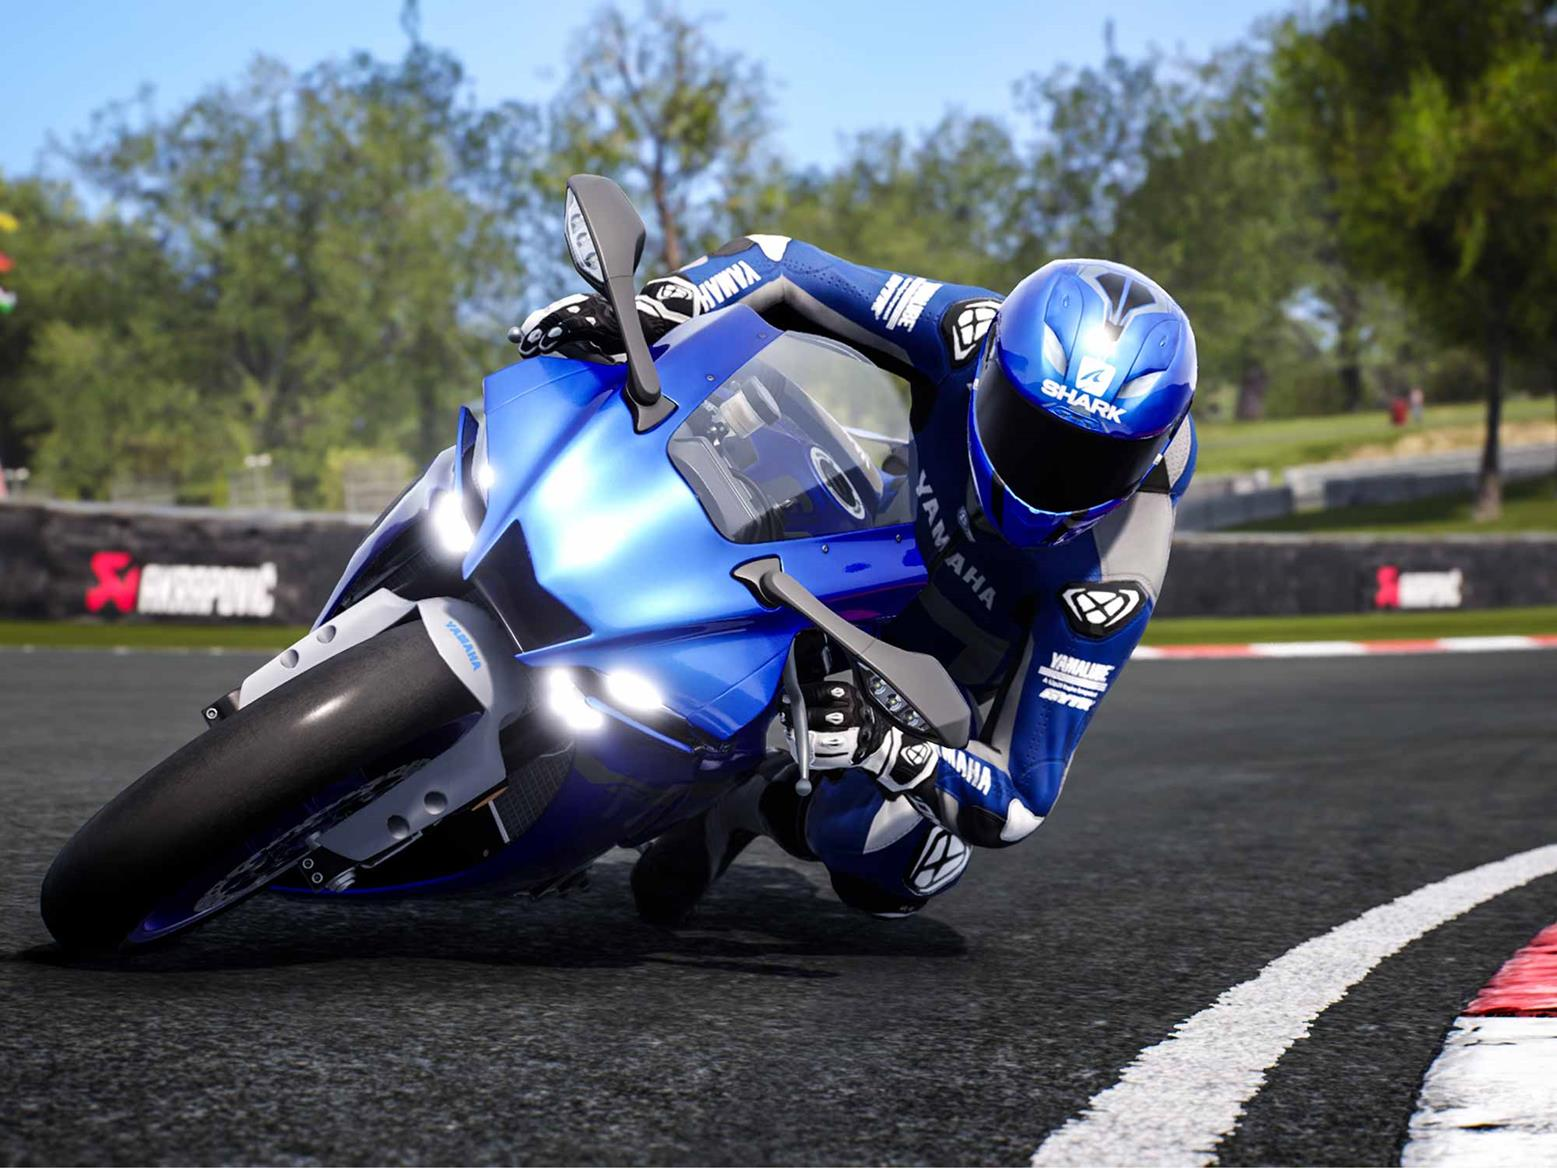 YAMAHA R1M for sale [ref: 55279793] | MCN